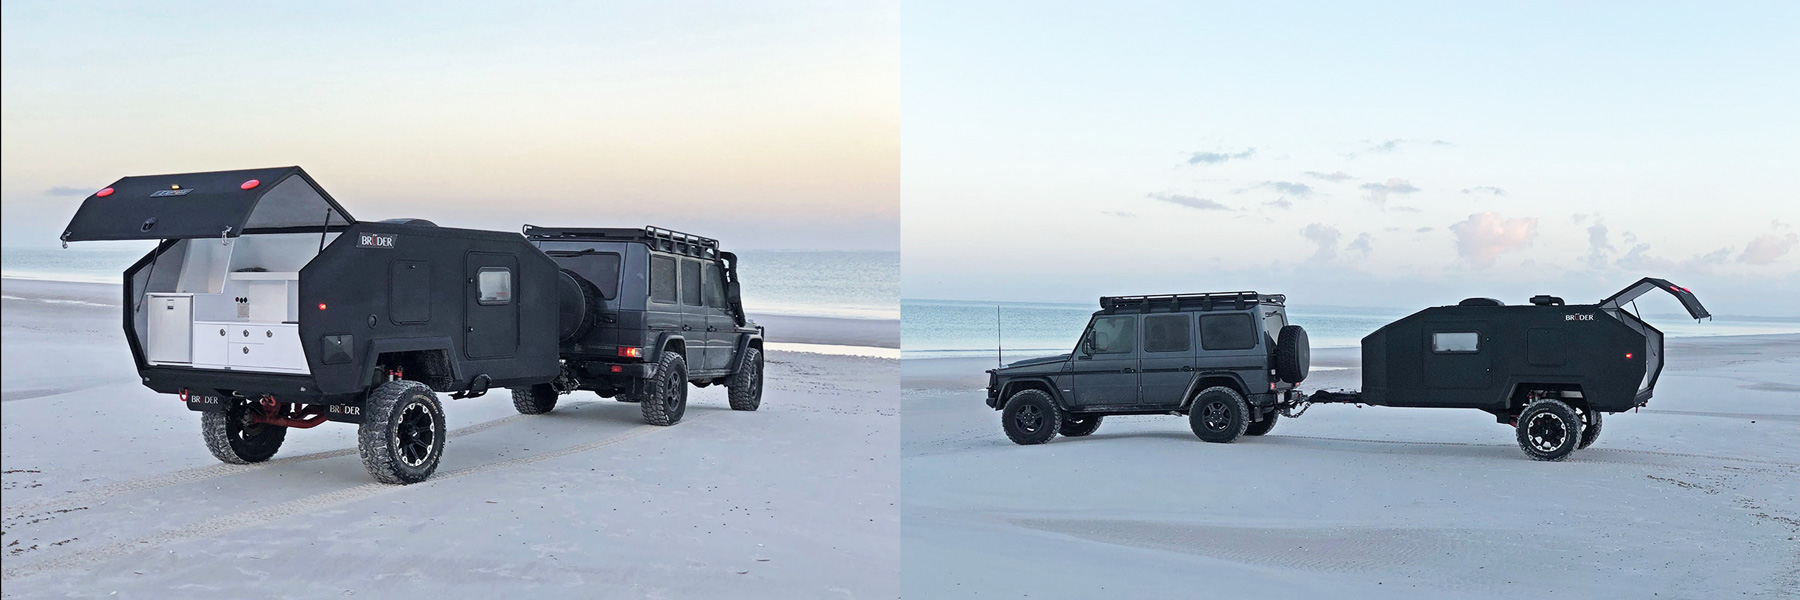 the bruder EXP4 is a rugged offroad camper with teardrop